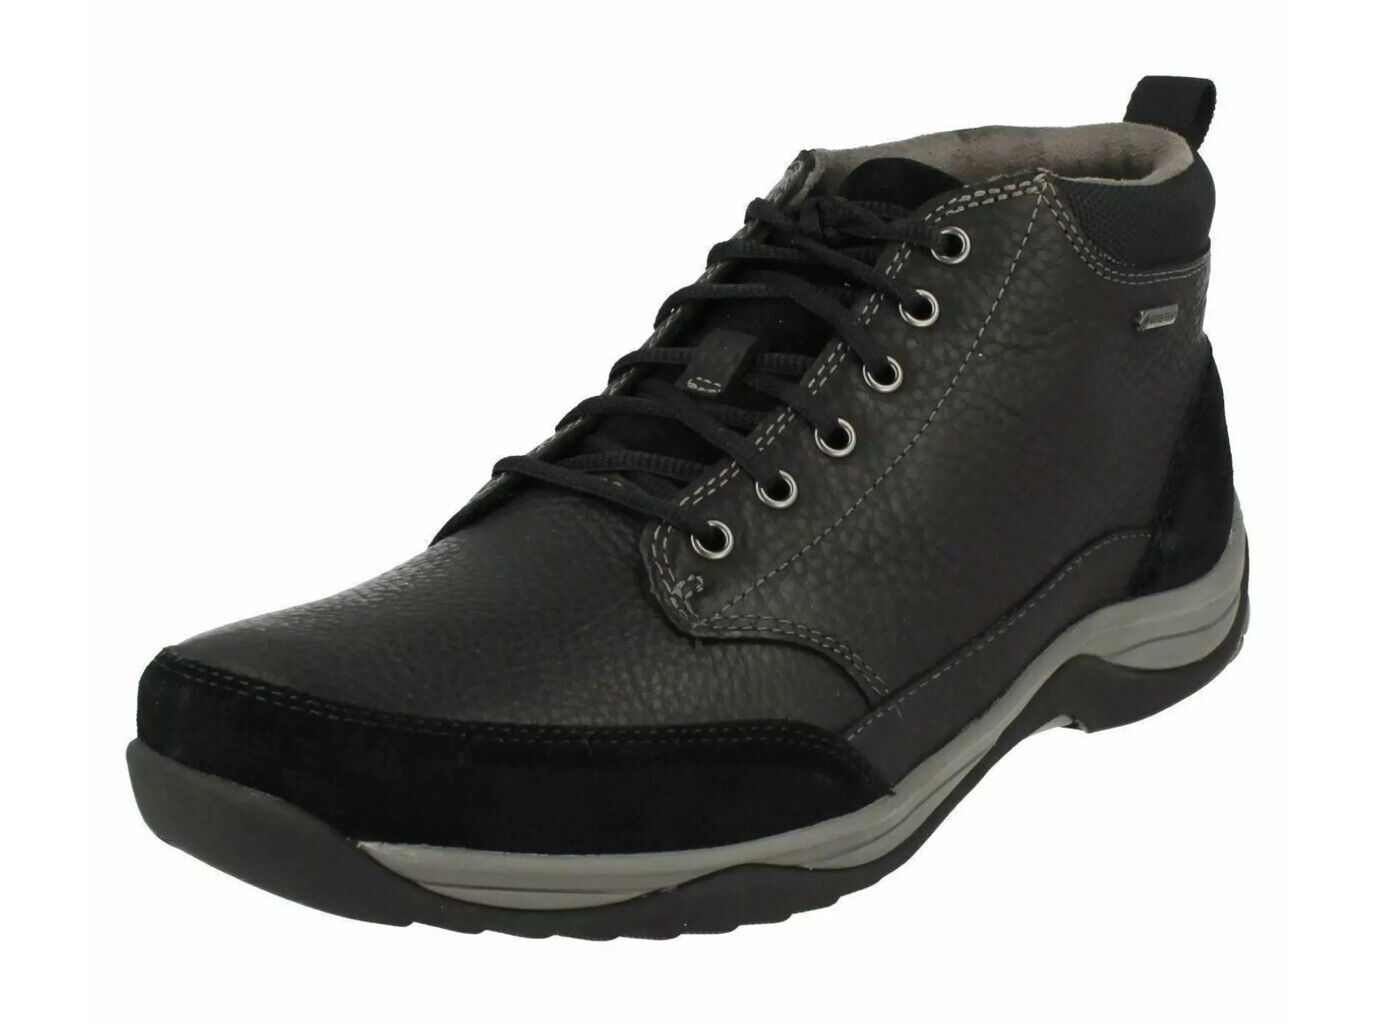 CLARKS MEN'S BAYSTONE TOP GTX BLACK LEATHER ANKLE WIDE BOOTS UK SIZE 7 H /41